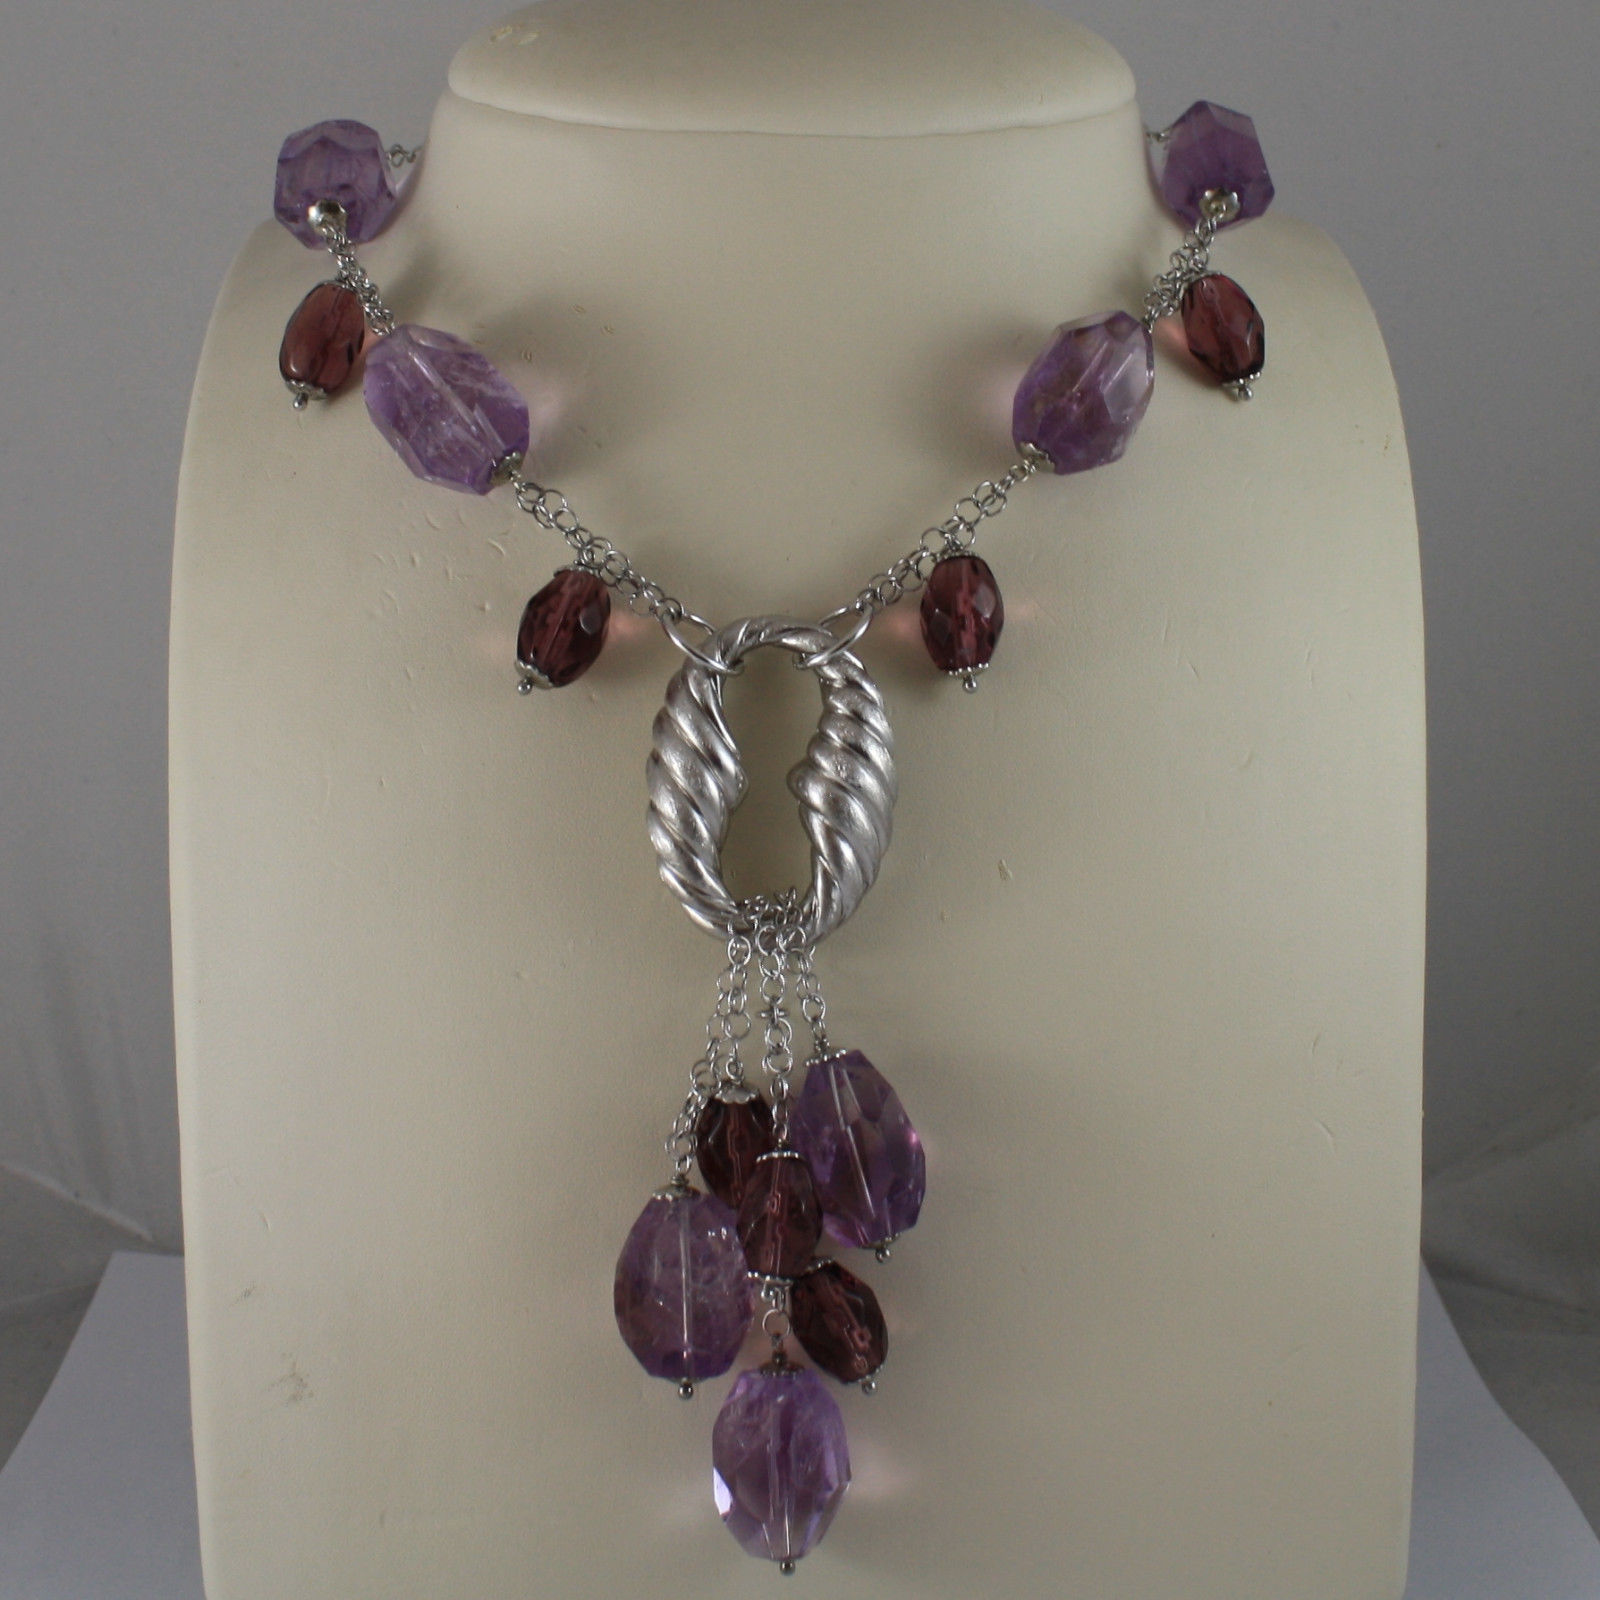 .925 SILVER RHODIUM NECKLACE WITH PURPLE FLUORITE, PURPLE CRYSTALS AND OVAL